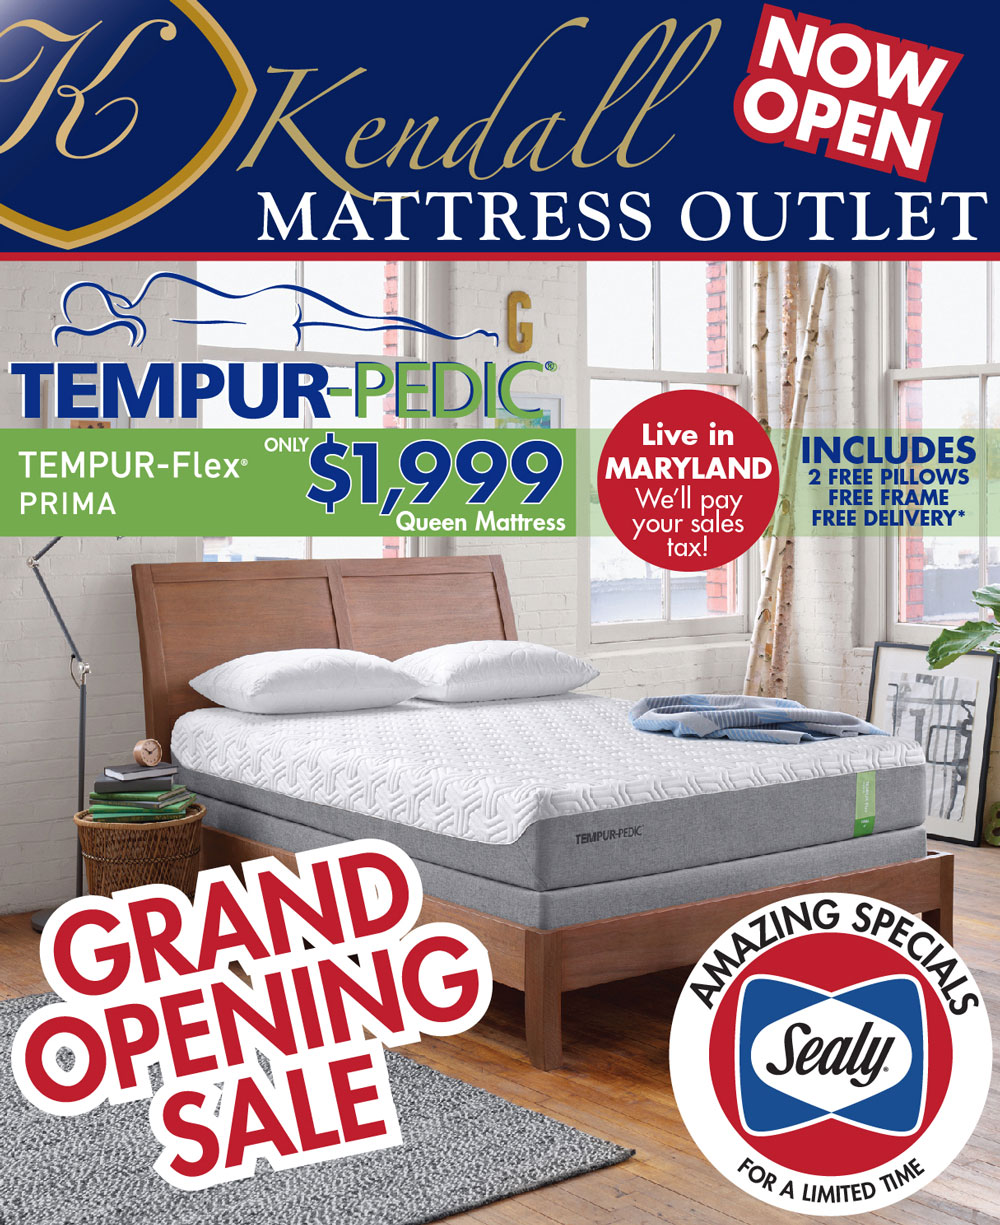 Mattress Outlet -Shop Local, Affordable, Quality, Selection